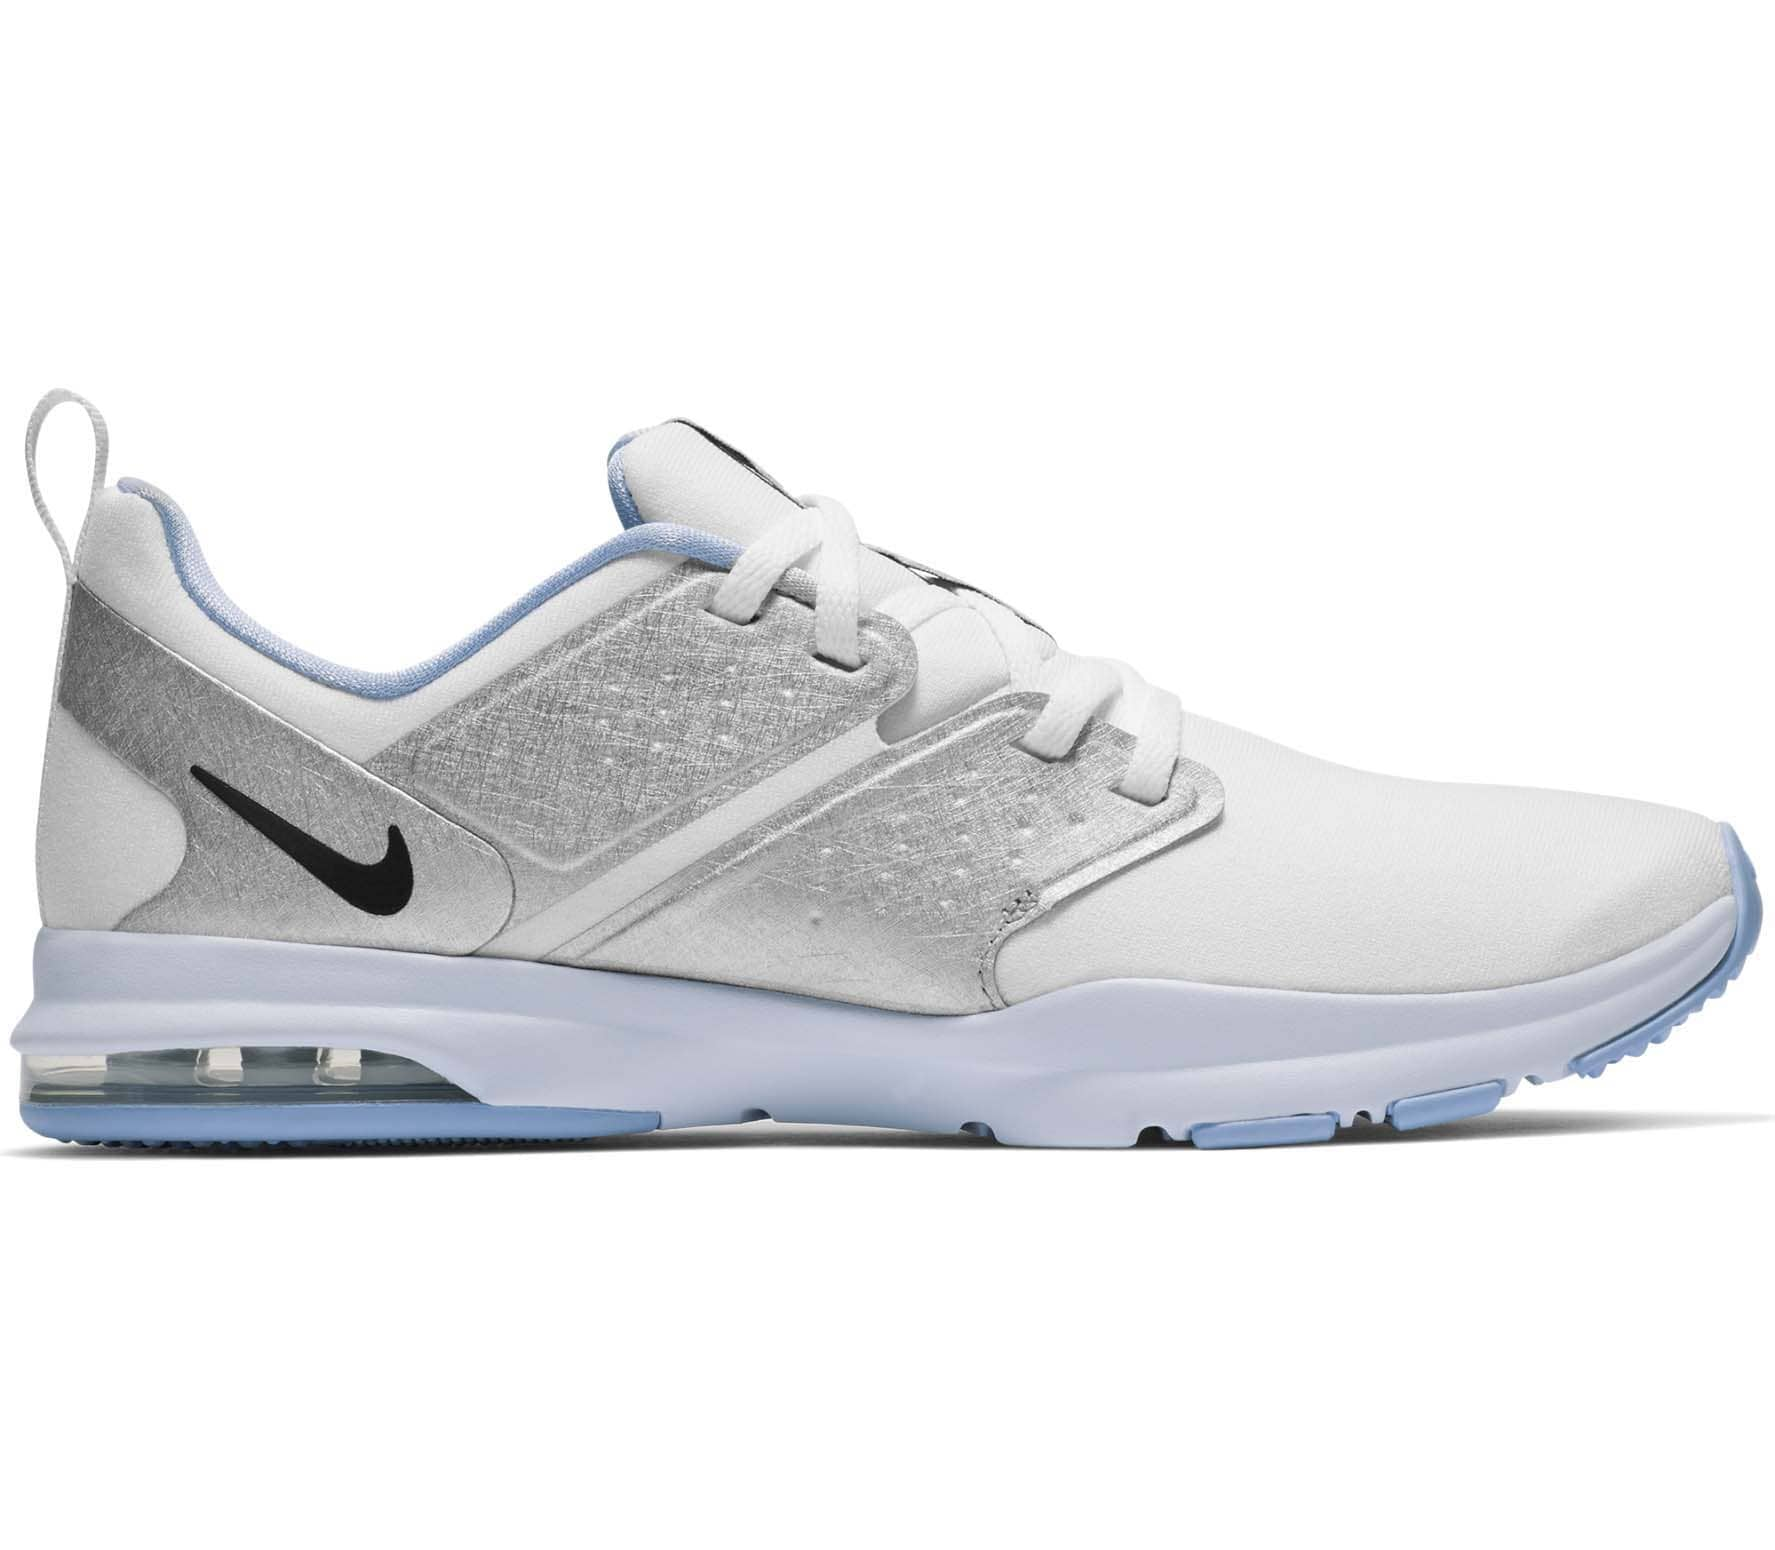 lowest price 1f5be e8cc1 Nike - Air Bella TR women s training shoes (silver white)